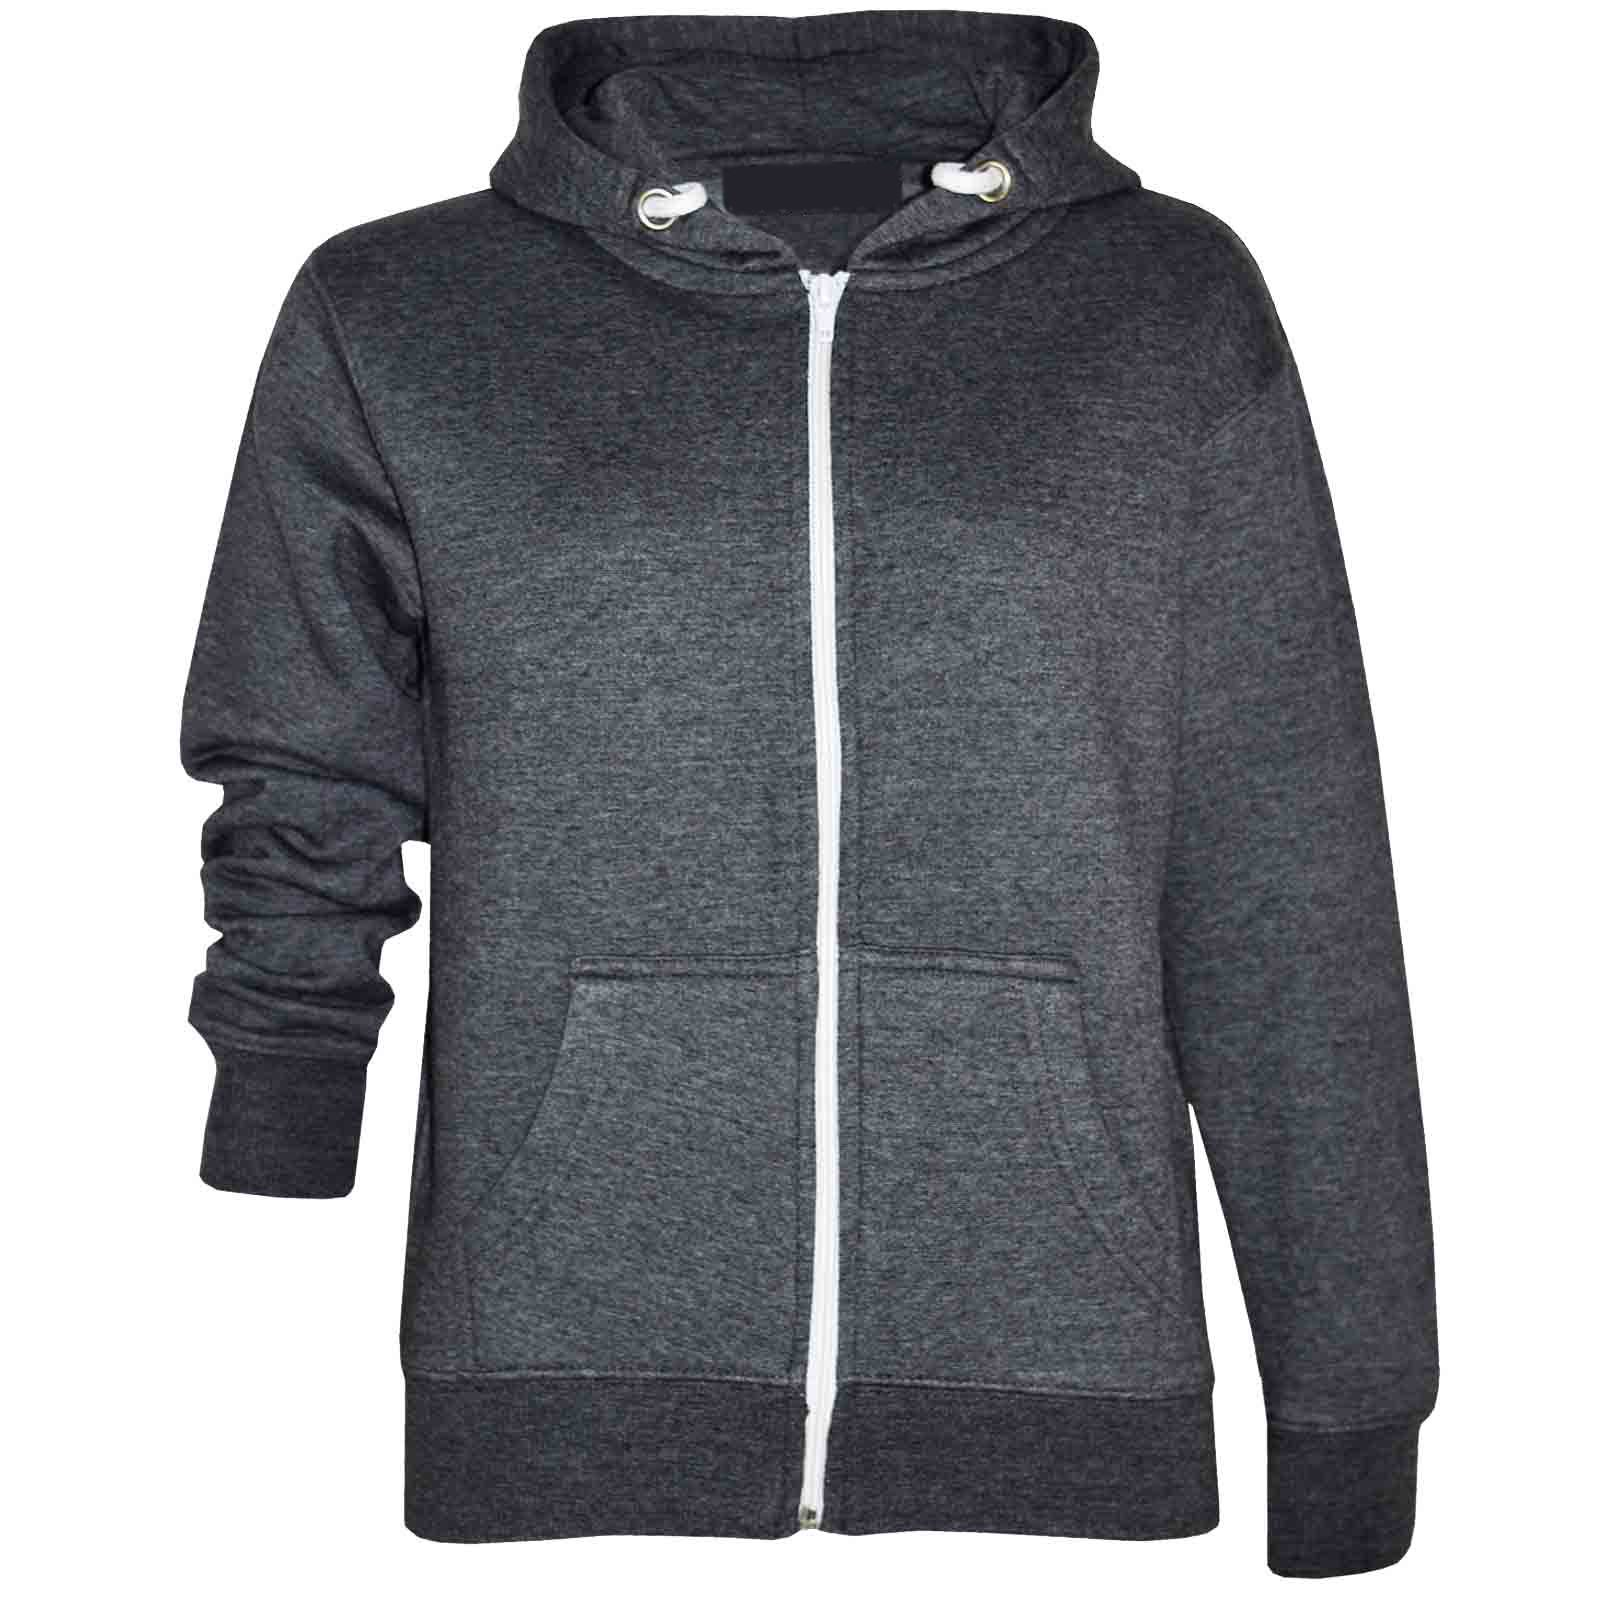 Sweatshirts + Hoodies Shop a variety of Sweatshirts & Hoodies at Forever Get incredible deals on everything from cozy pullovers to trendy cropped hoodies – we have all the fresh takes on sweatshirts + hoodies you need.